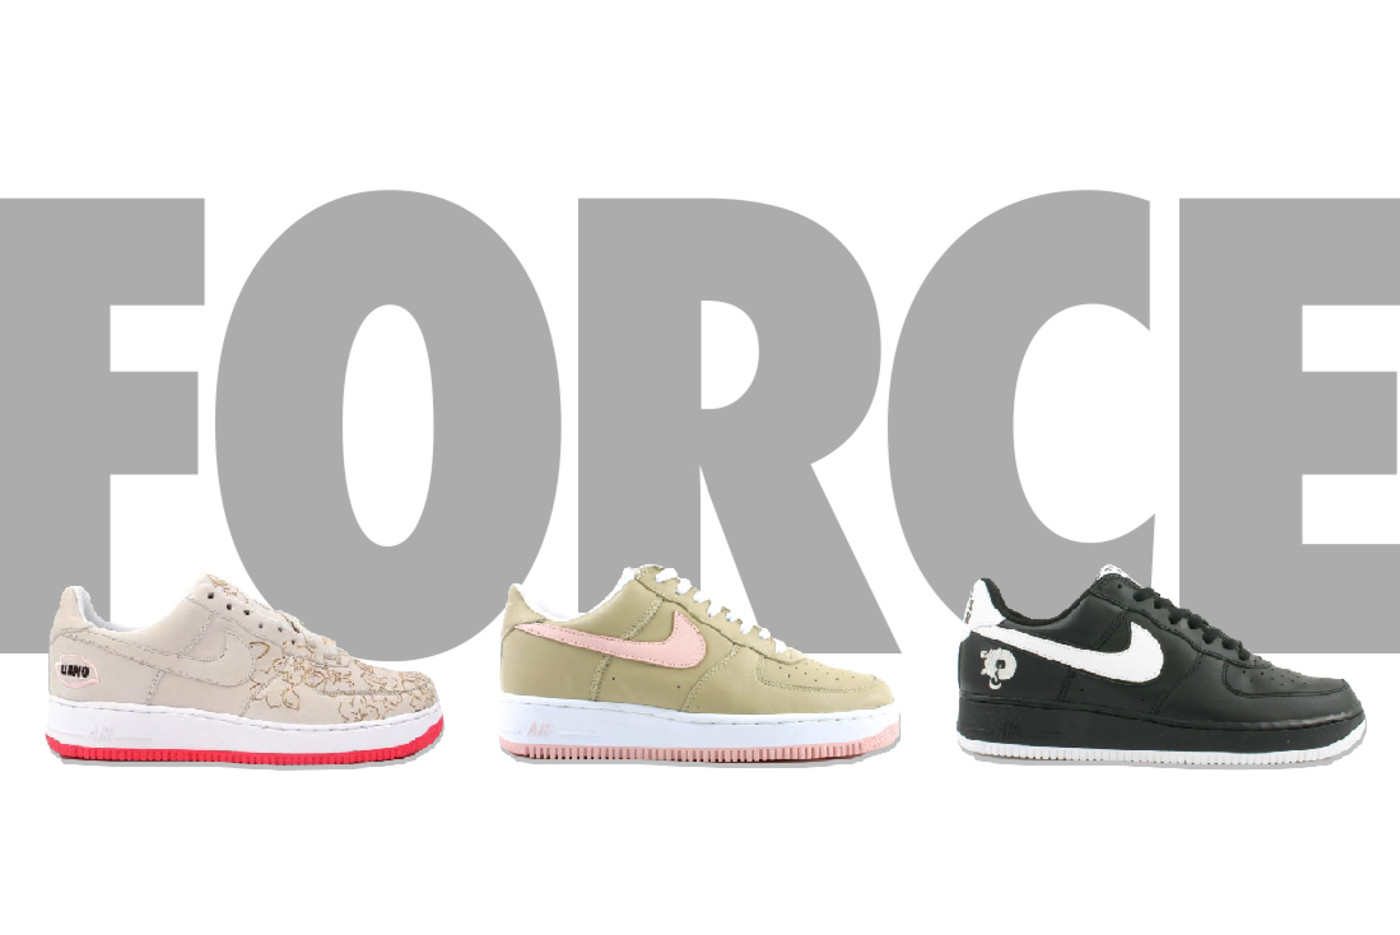 best nike air force 1s of the 21st century complex best nike air force 1s of the 21st